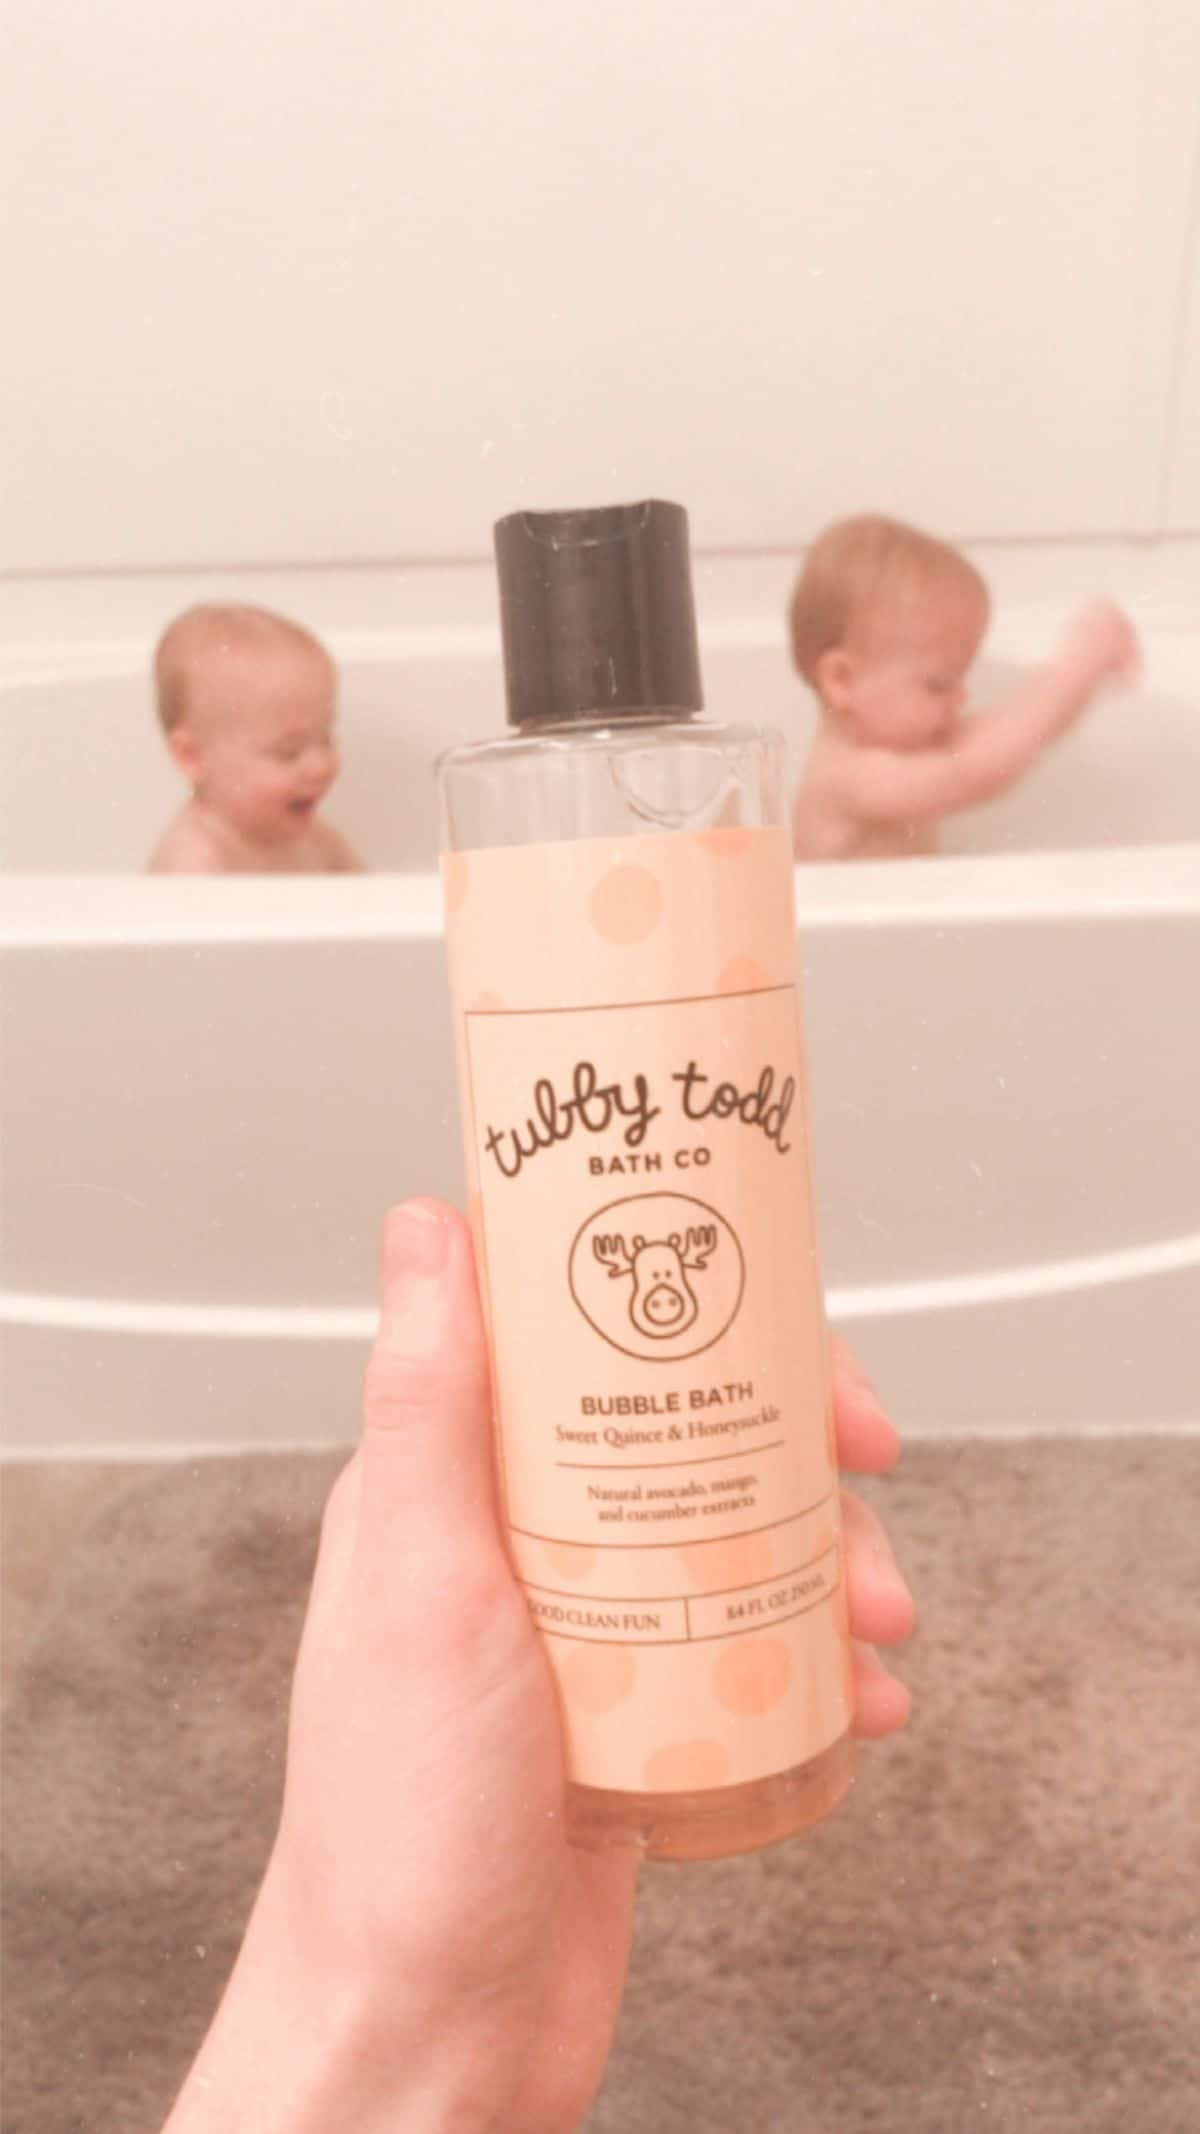 tubby todd bubble bath being held up in front of twin babies in the bath tub in the background